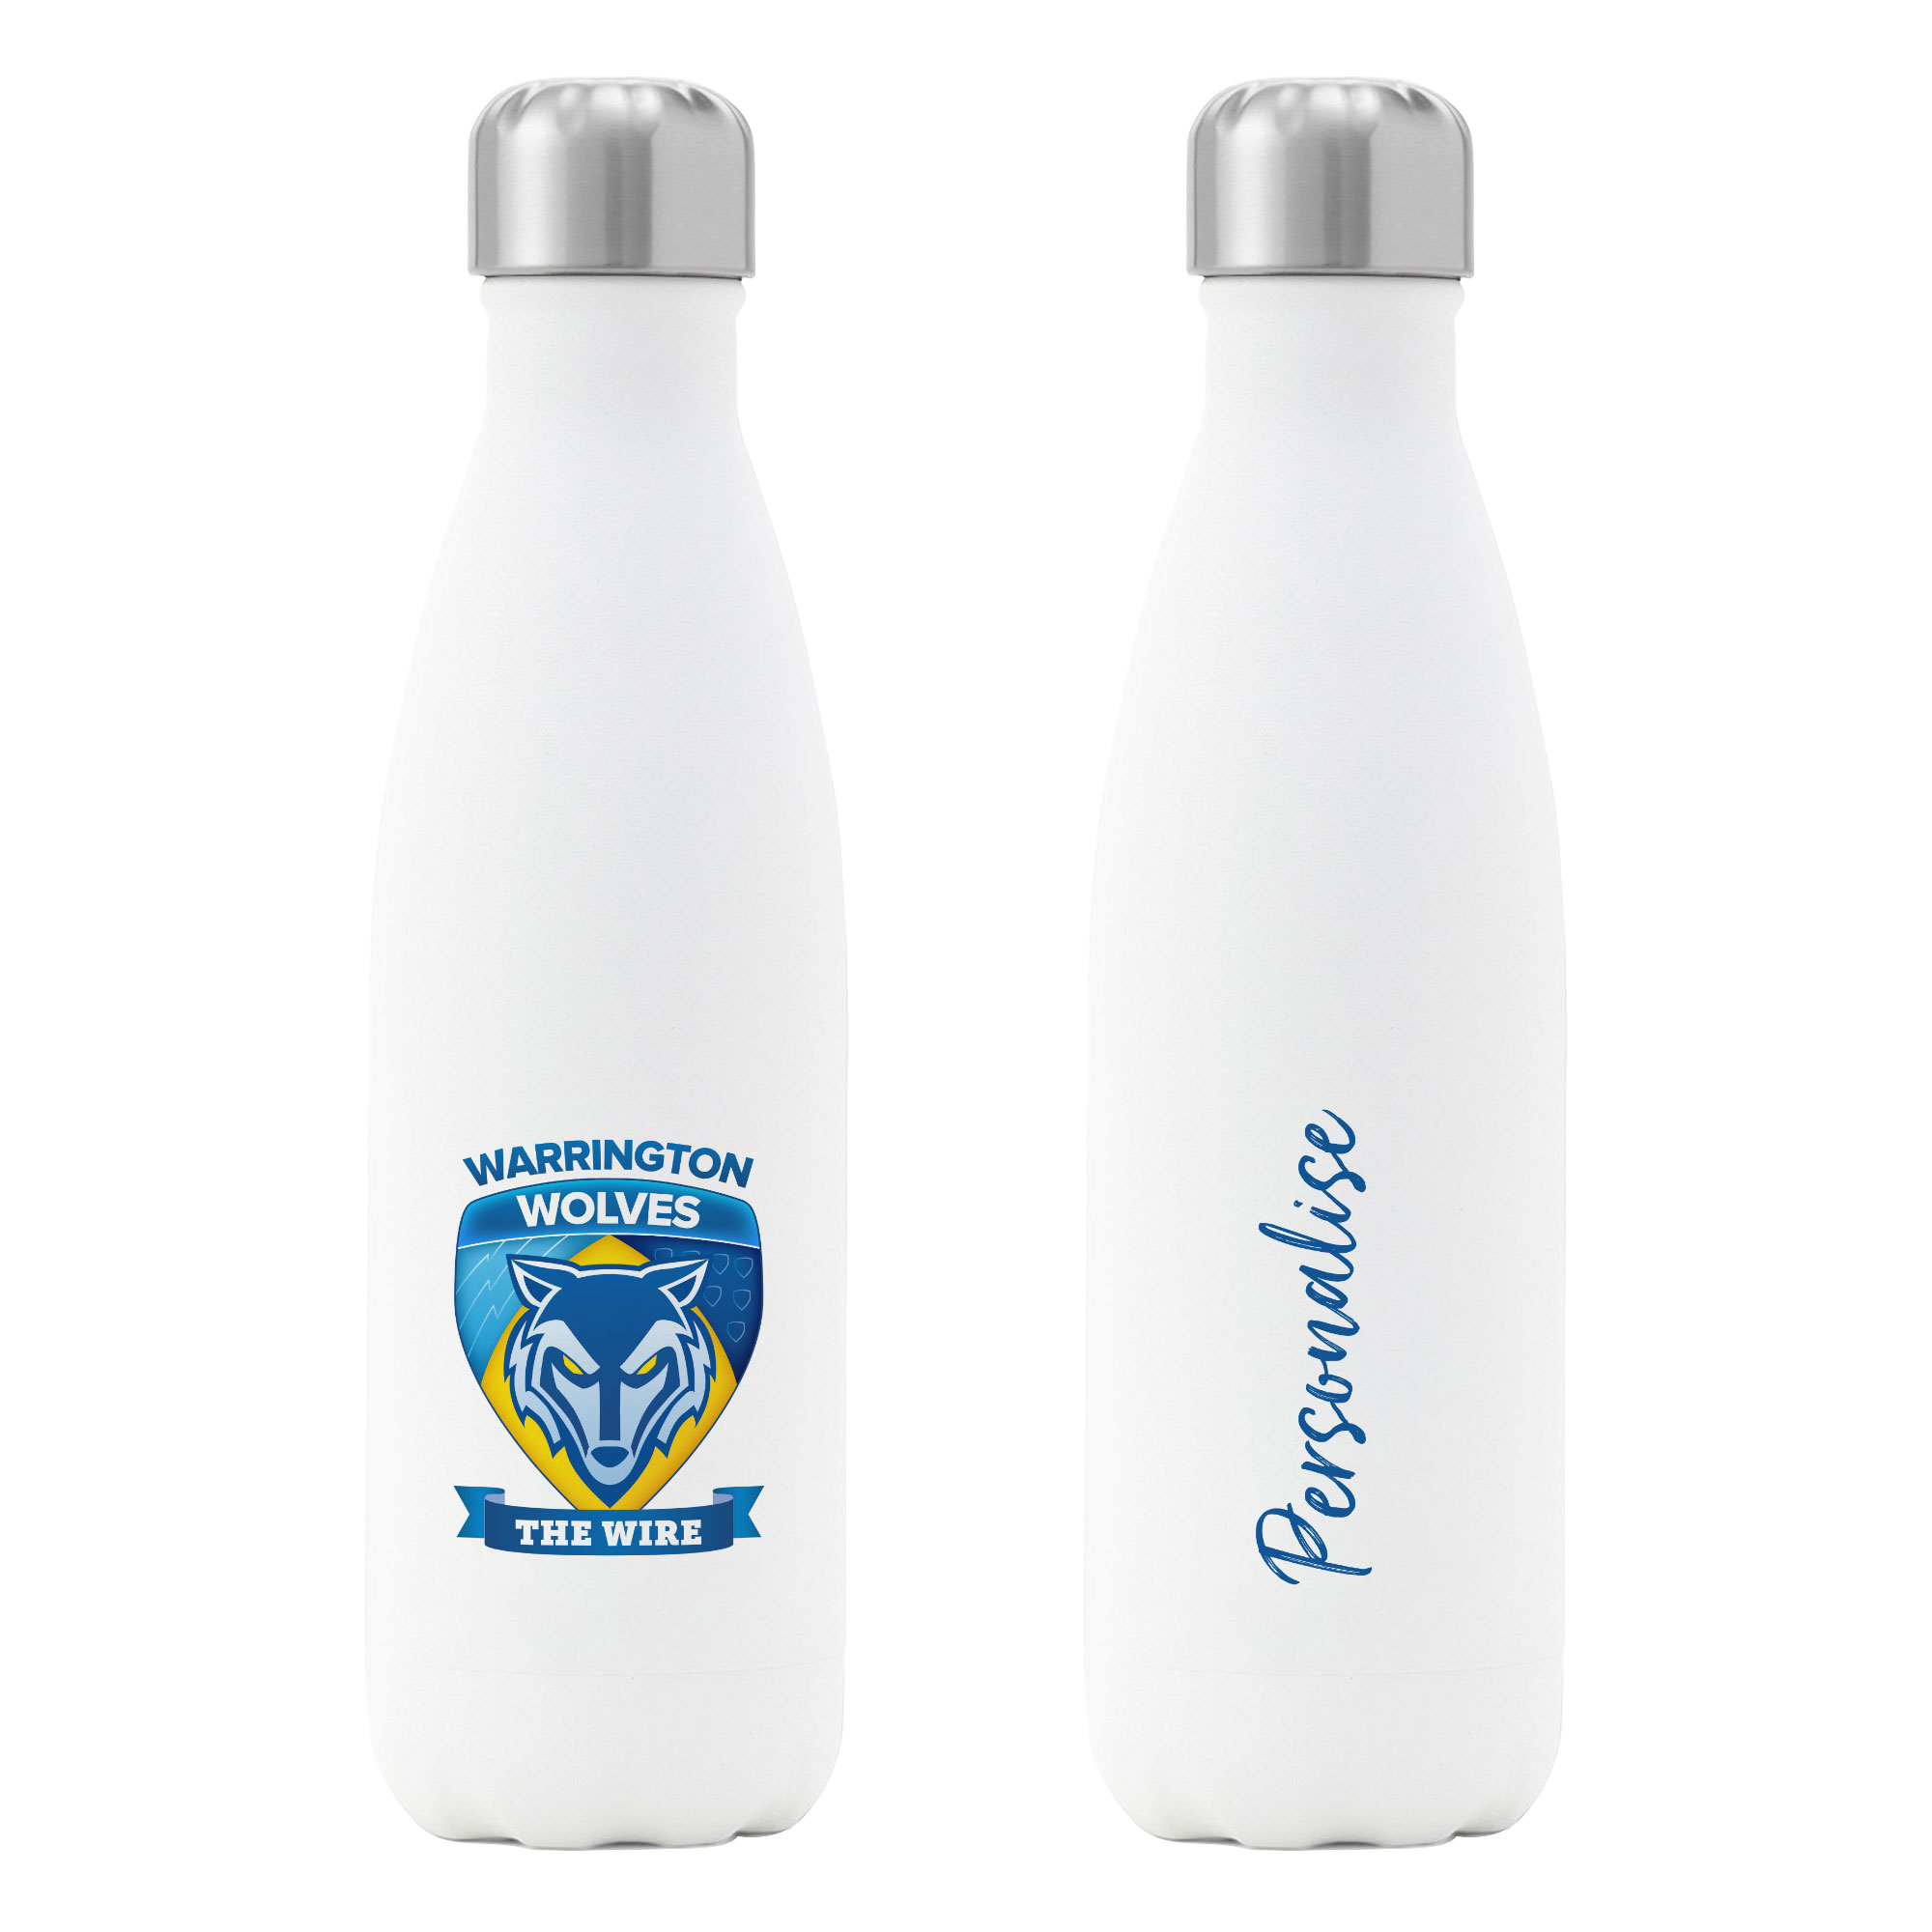 Warrington Wolves Crest Insulated Water Bottle - White